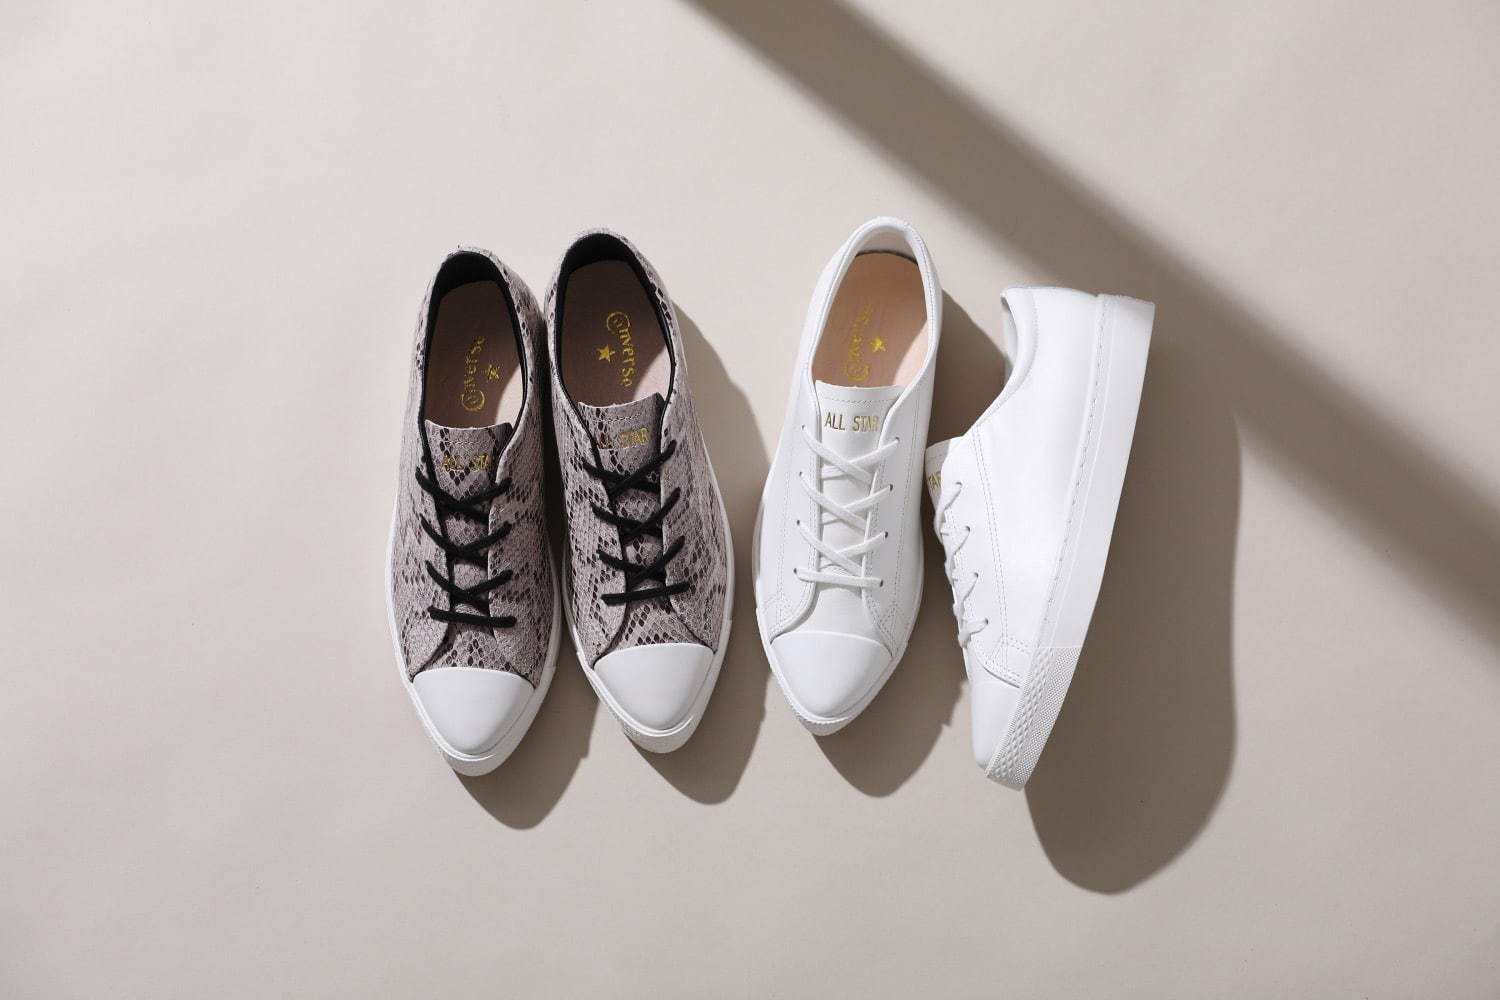 CONVERSE ALL STAR COUPE POINTUE LEATHER OX & SNK OX コンバース オールスター クップ ポワンテュ レザー OX & スネーク OX pair